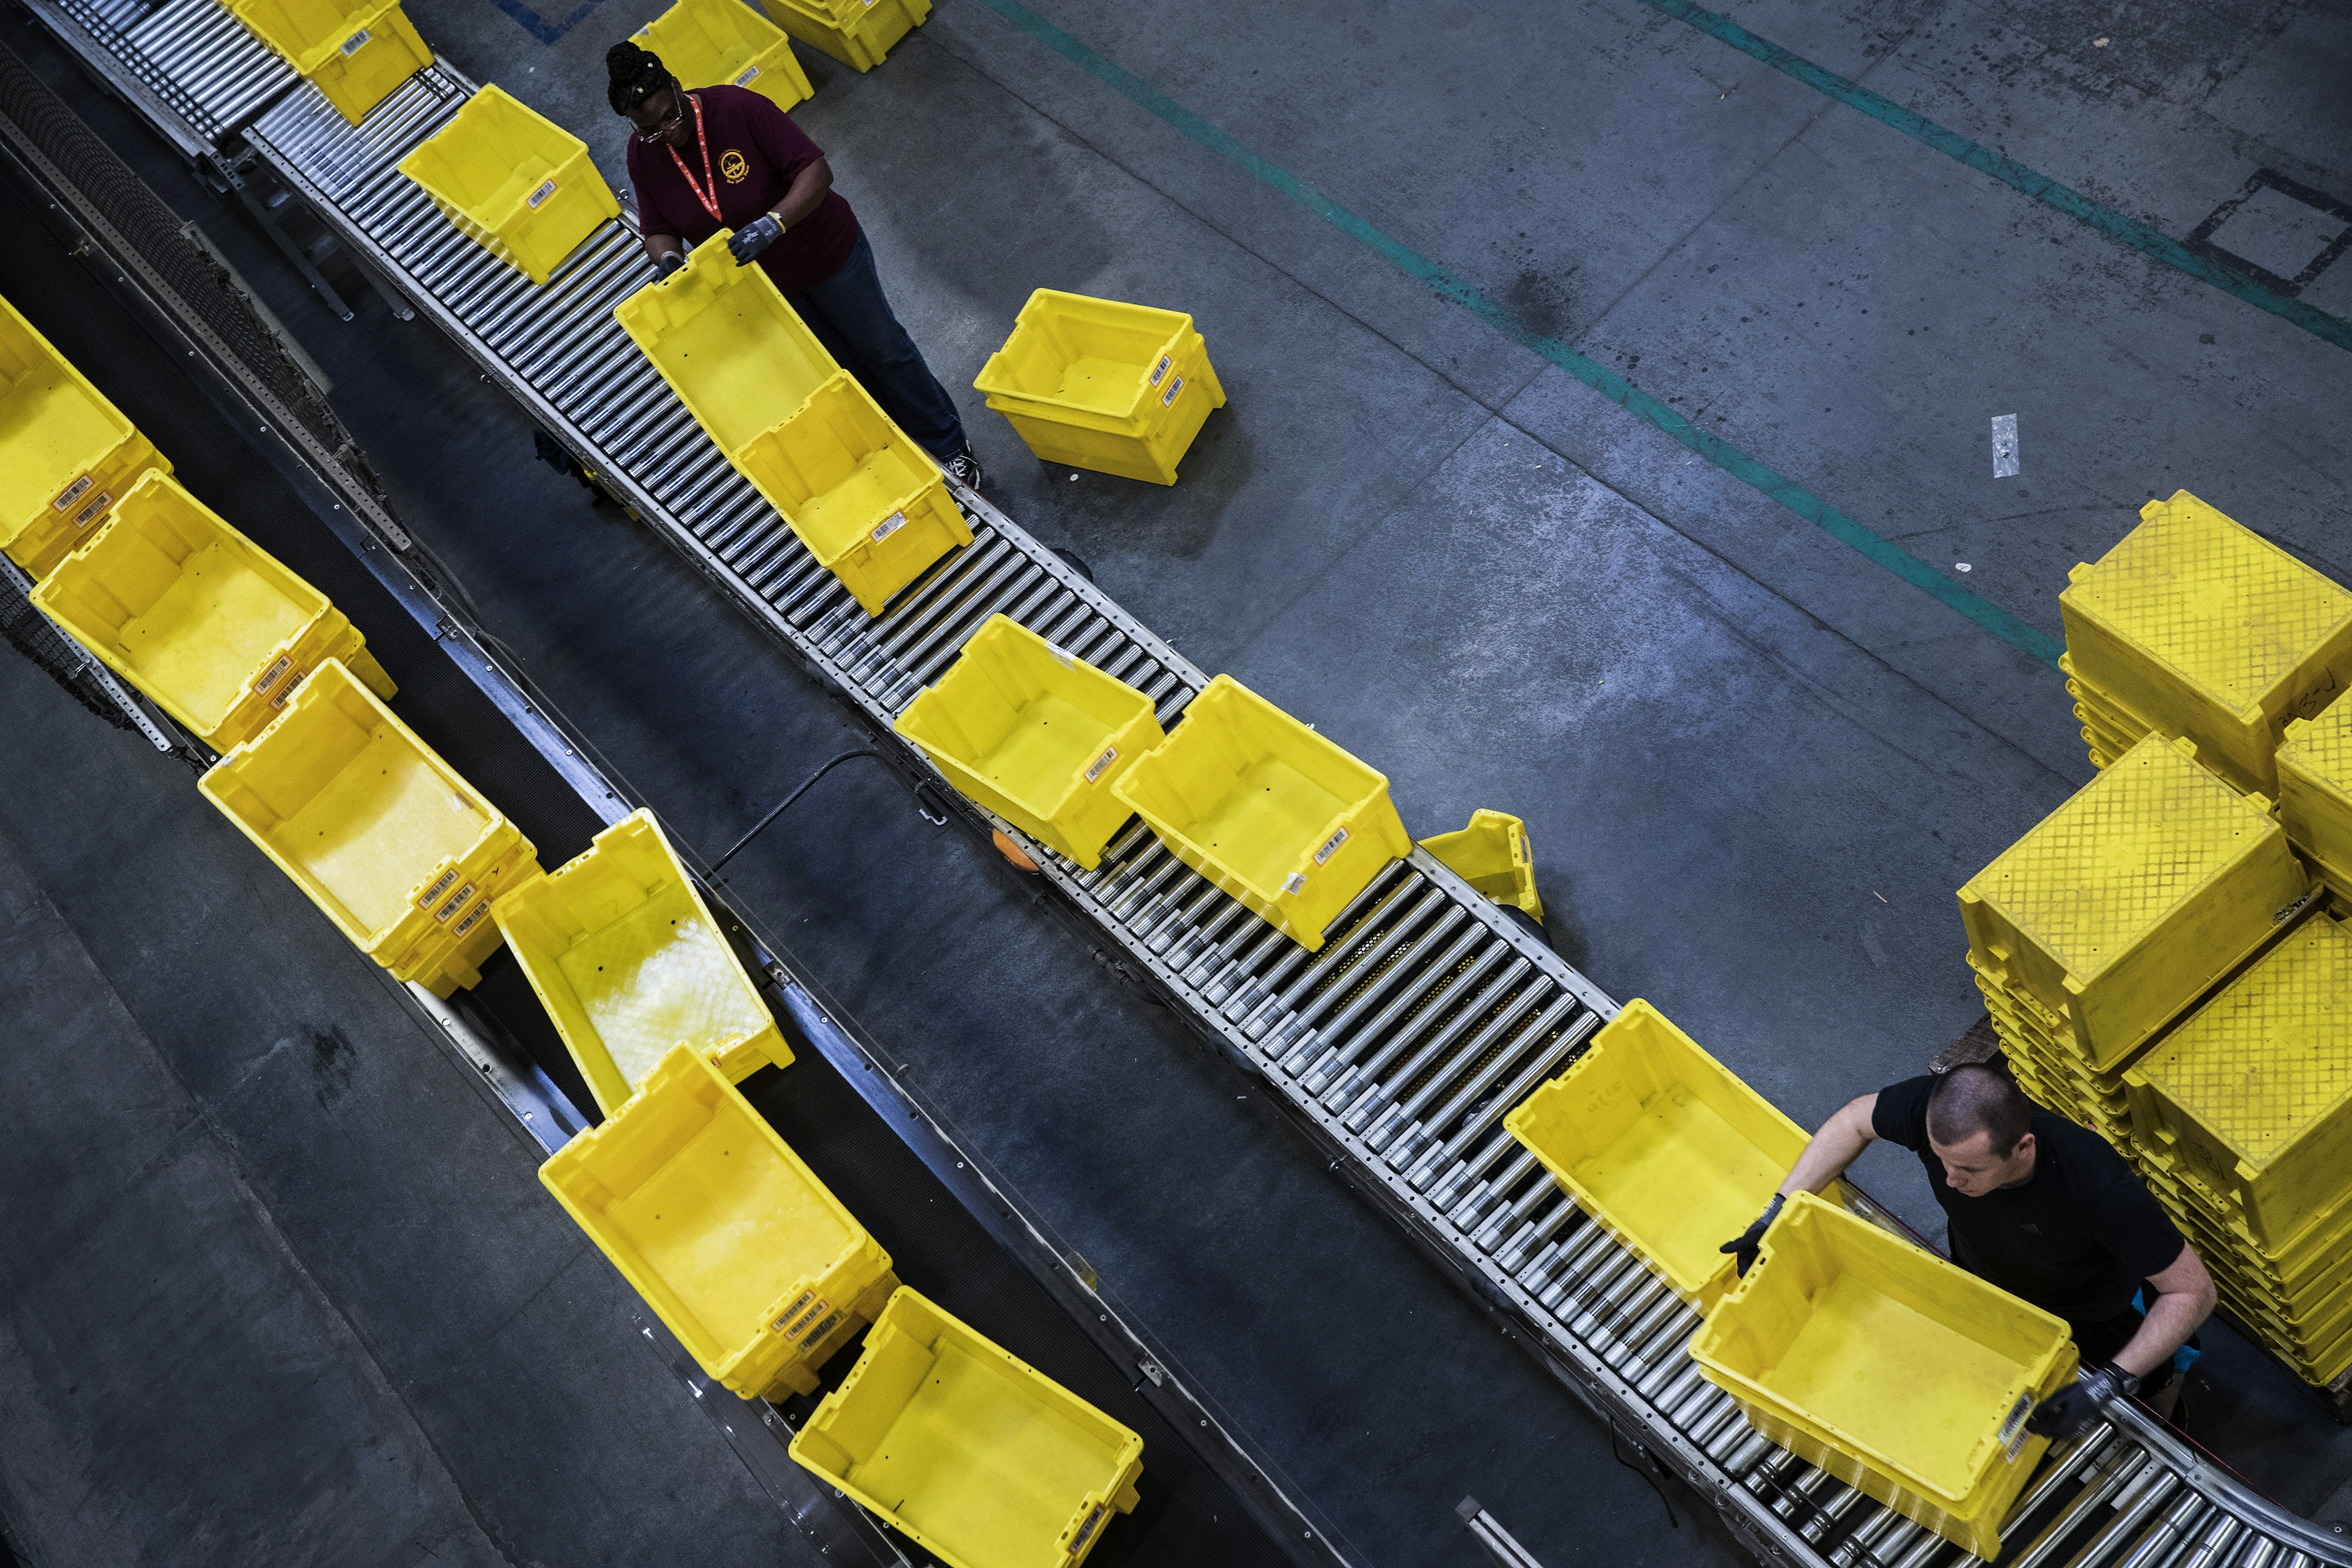 Employees organize plastic bins for orders at the Amazon.com Inc. fulfillment center in Robbinsville, New Jersey, U.S., on Monday, Nov. 27, 2017. The holiday shopping season is off to a strong start and retailers appear to be continuing the momentum today -- Cyber Monday -- the biggest online spending day of the year. Photographer: Victor J. Blue/Bloomberg via Getty Images